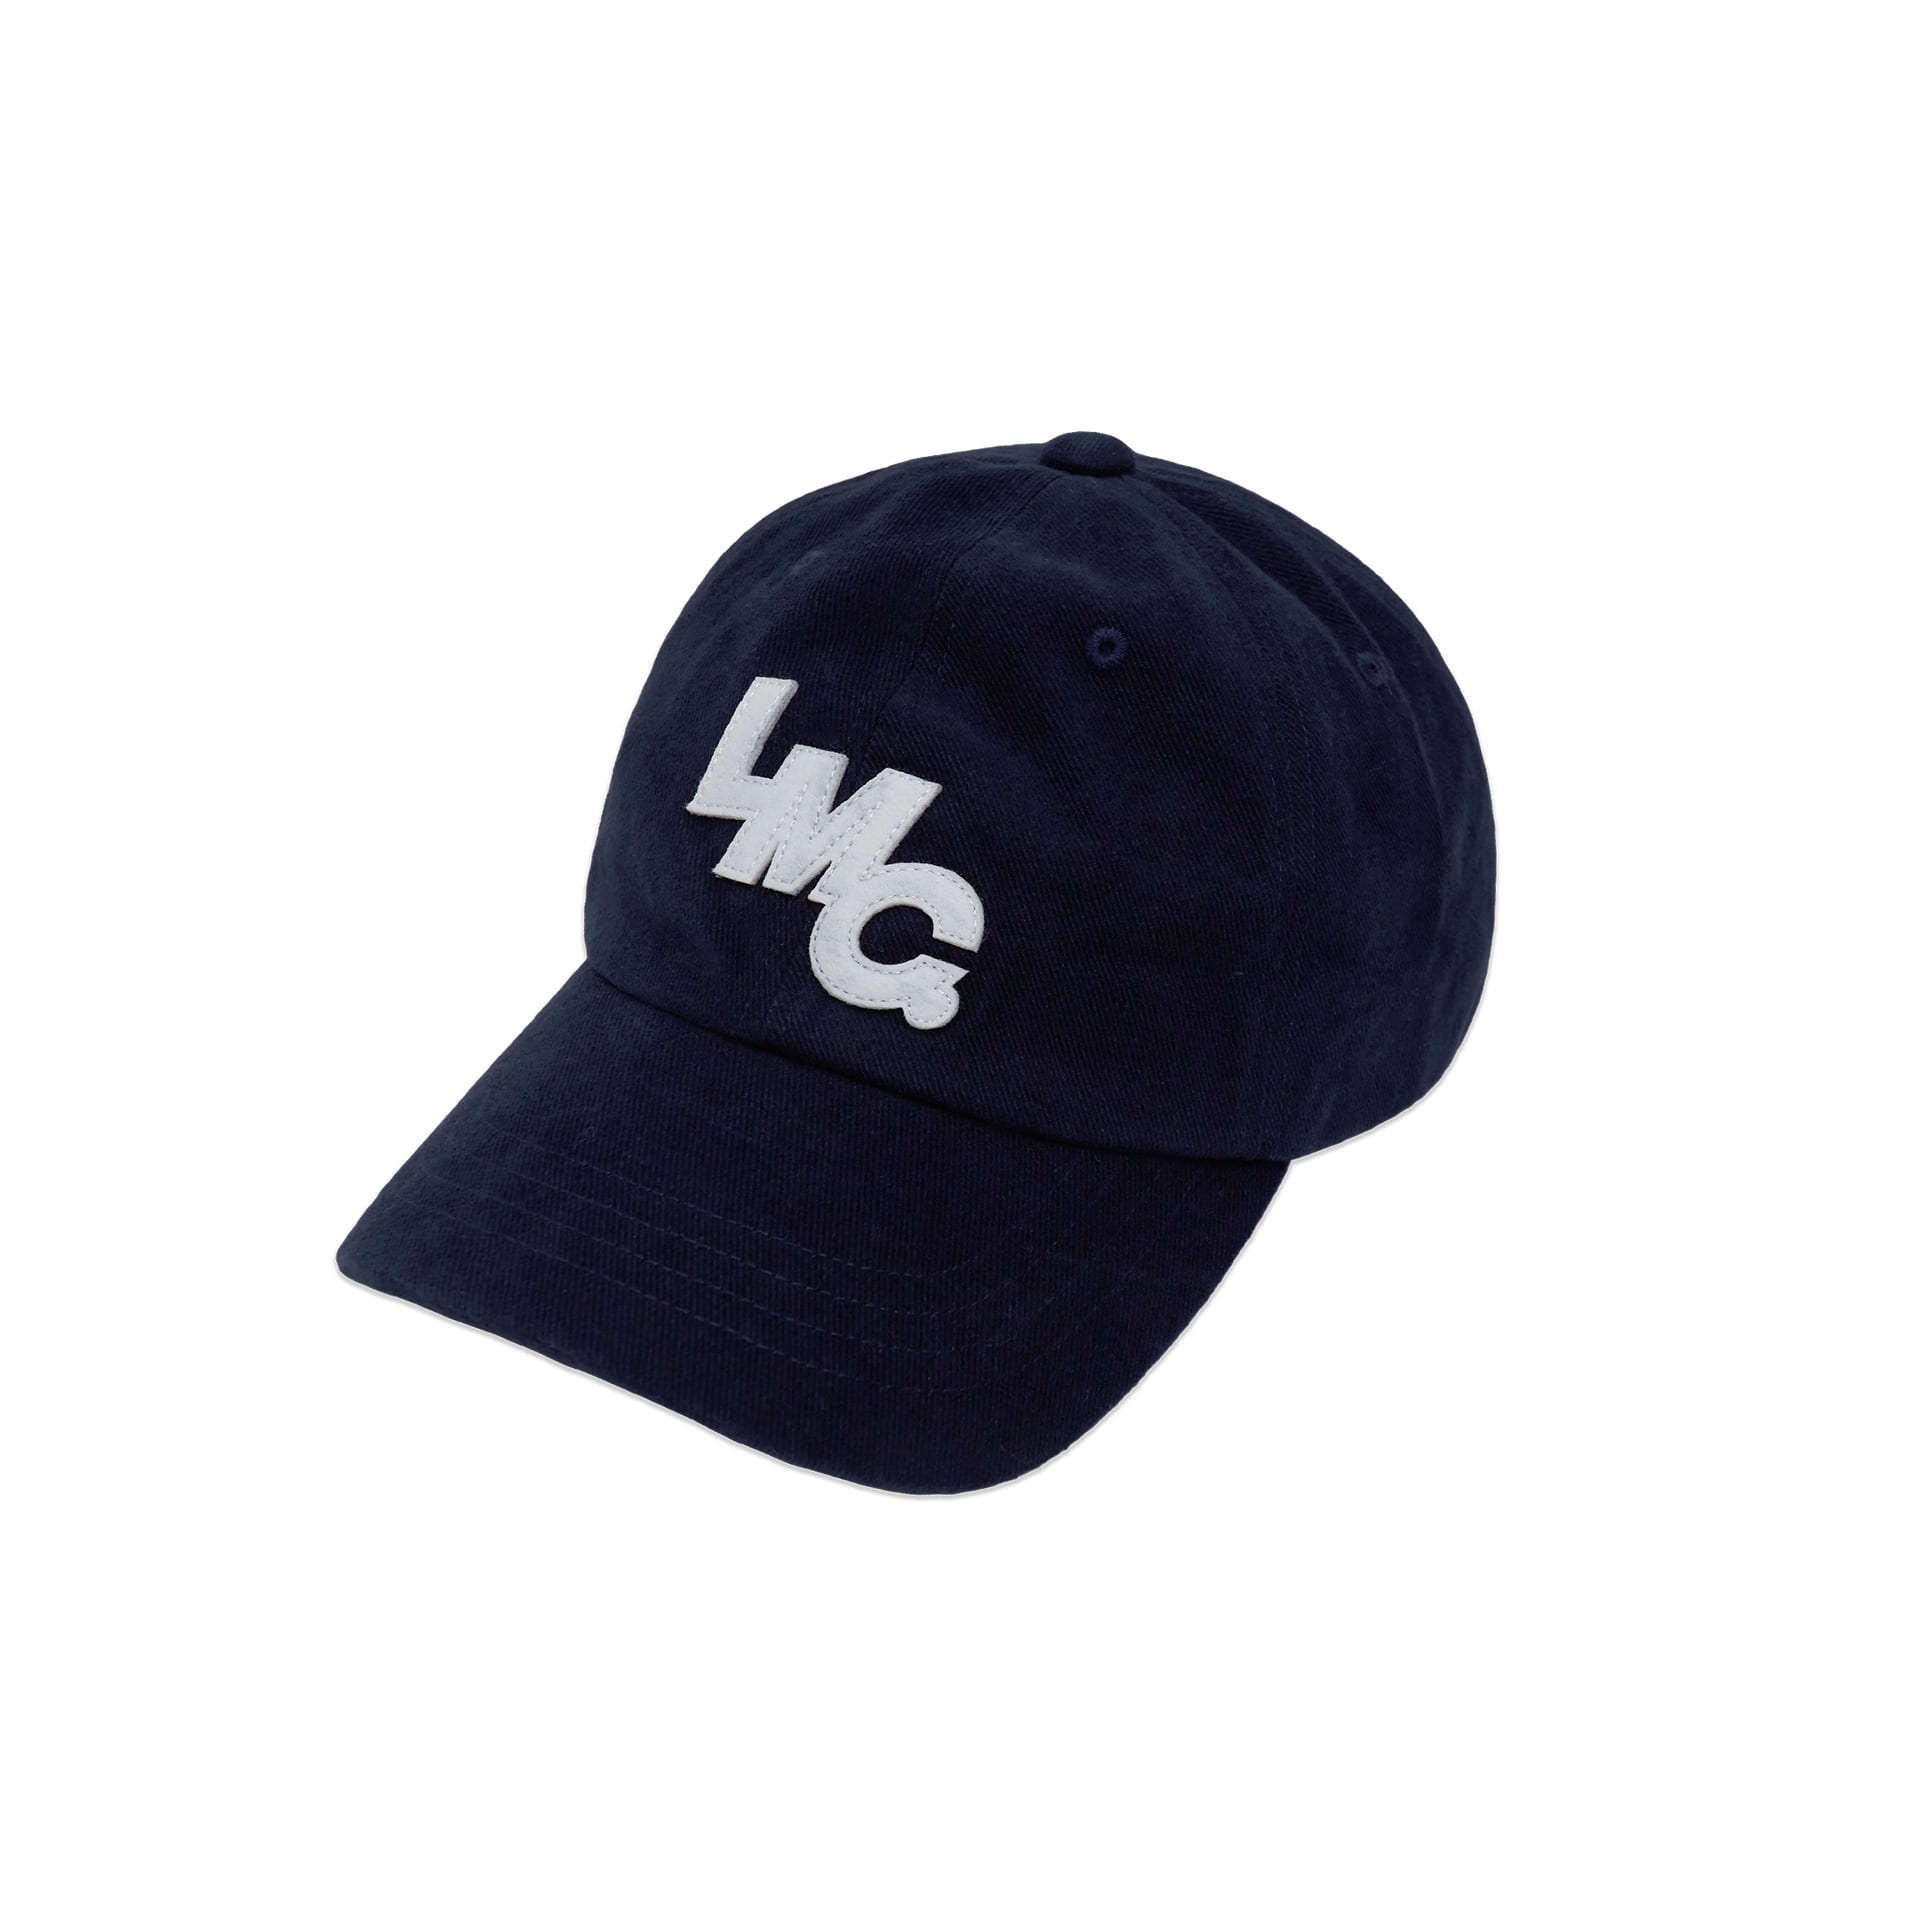 LMC MASS 6 PANEL CAP navy